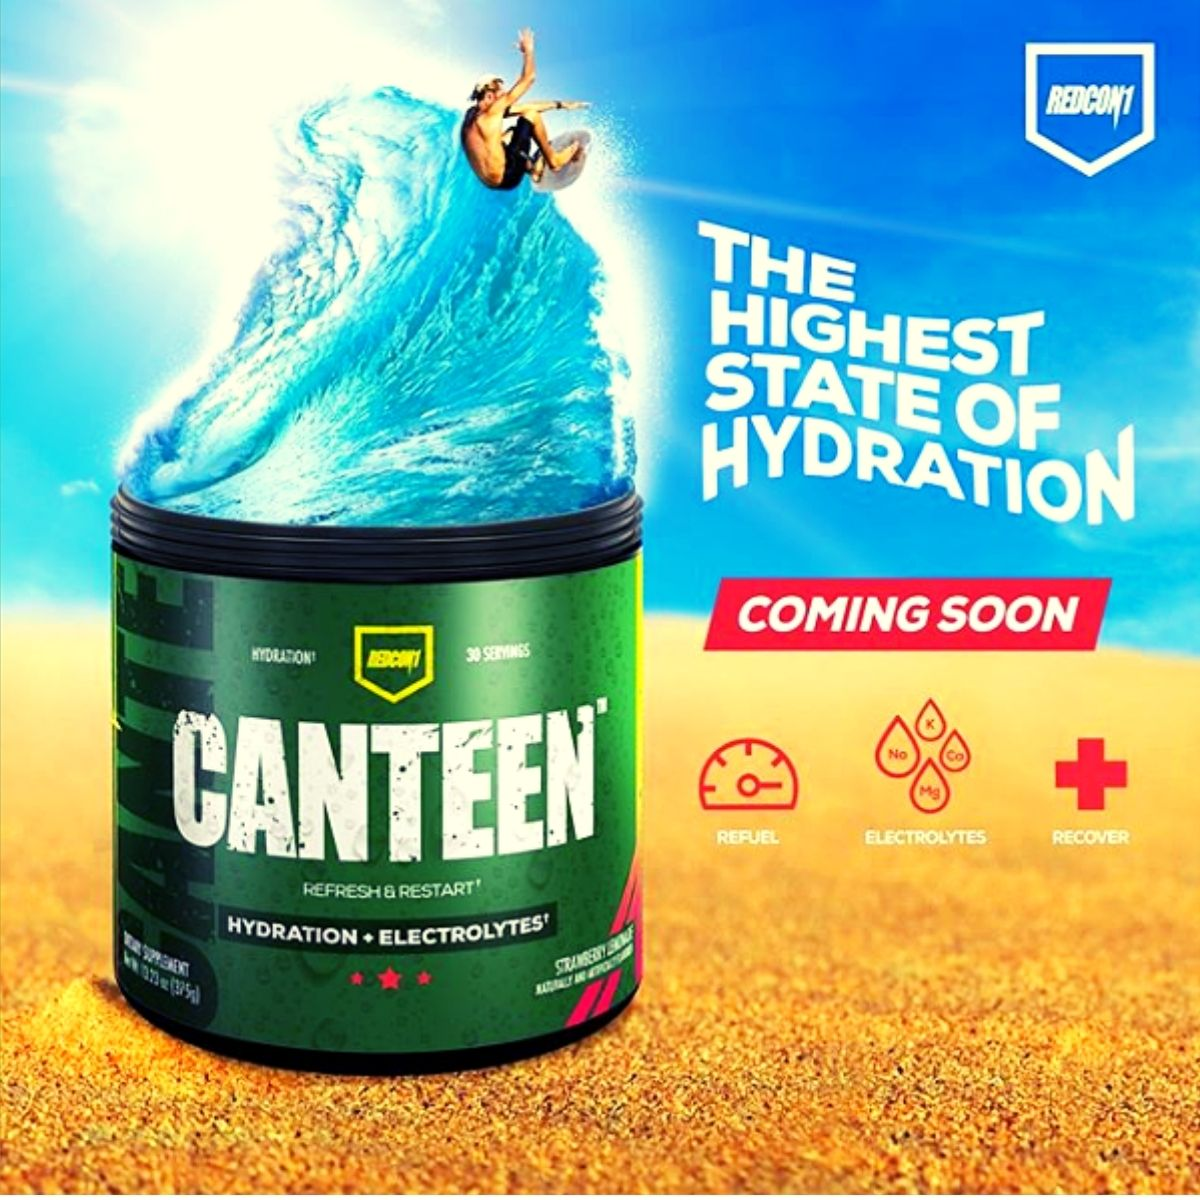 New Redcon1 Canteen Hydration Supplement